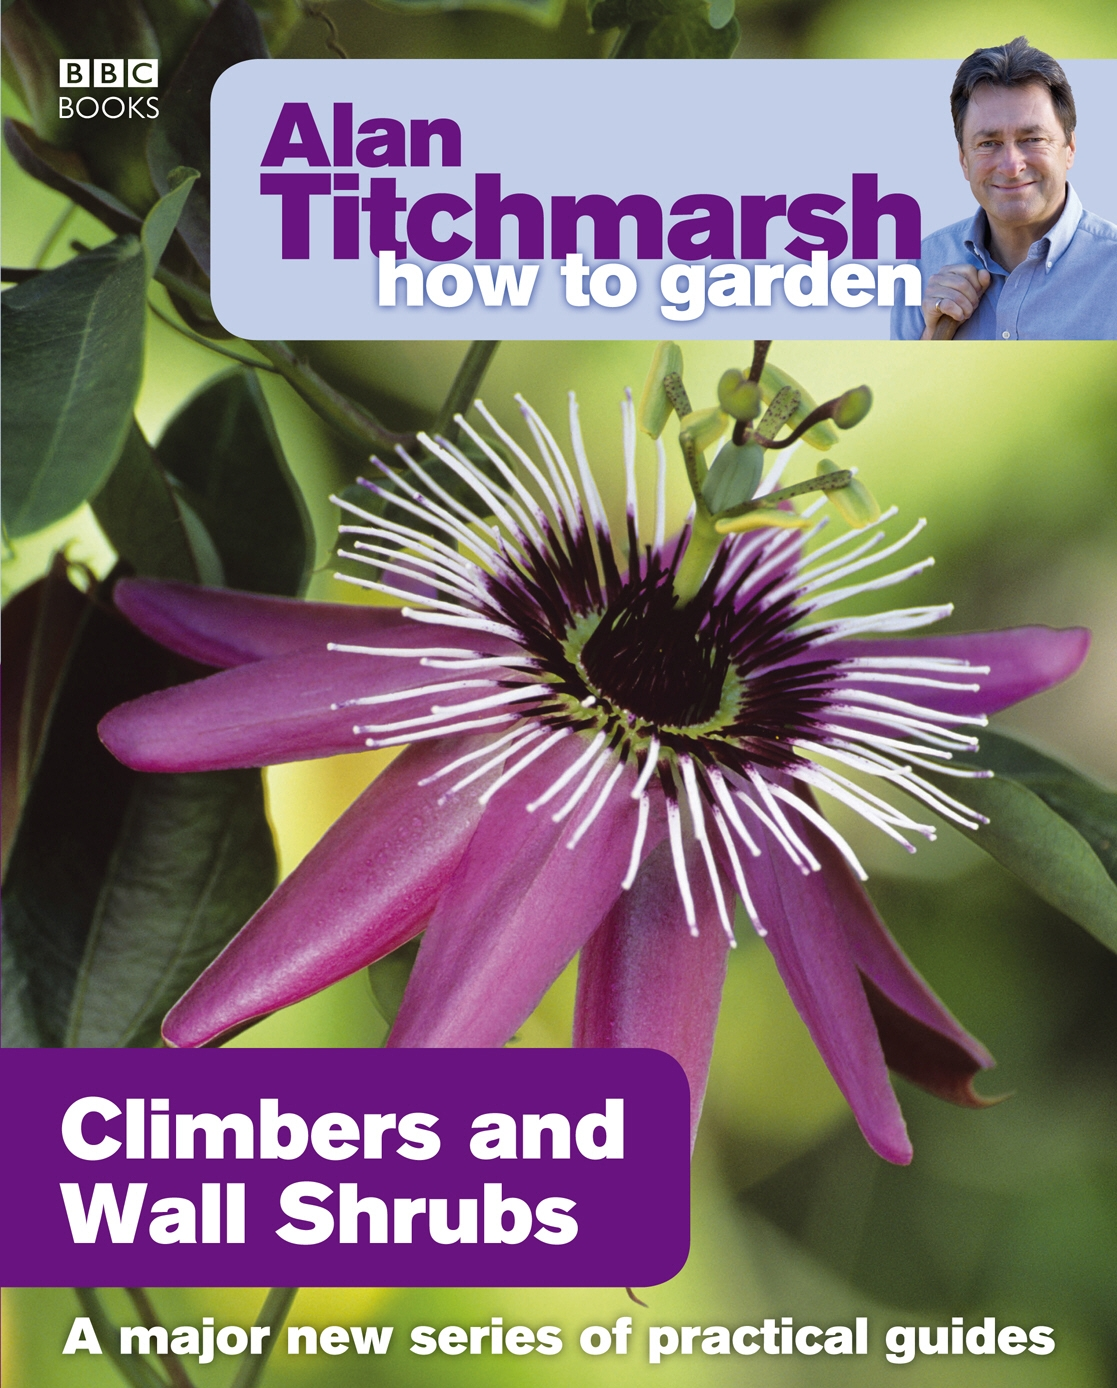 Alan Titchmarsh How to Garden Climbers and Wall Shrubs by Alan